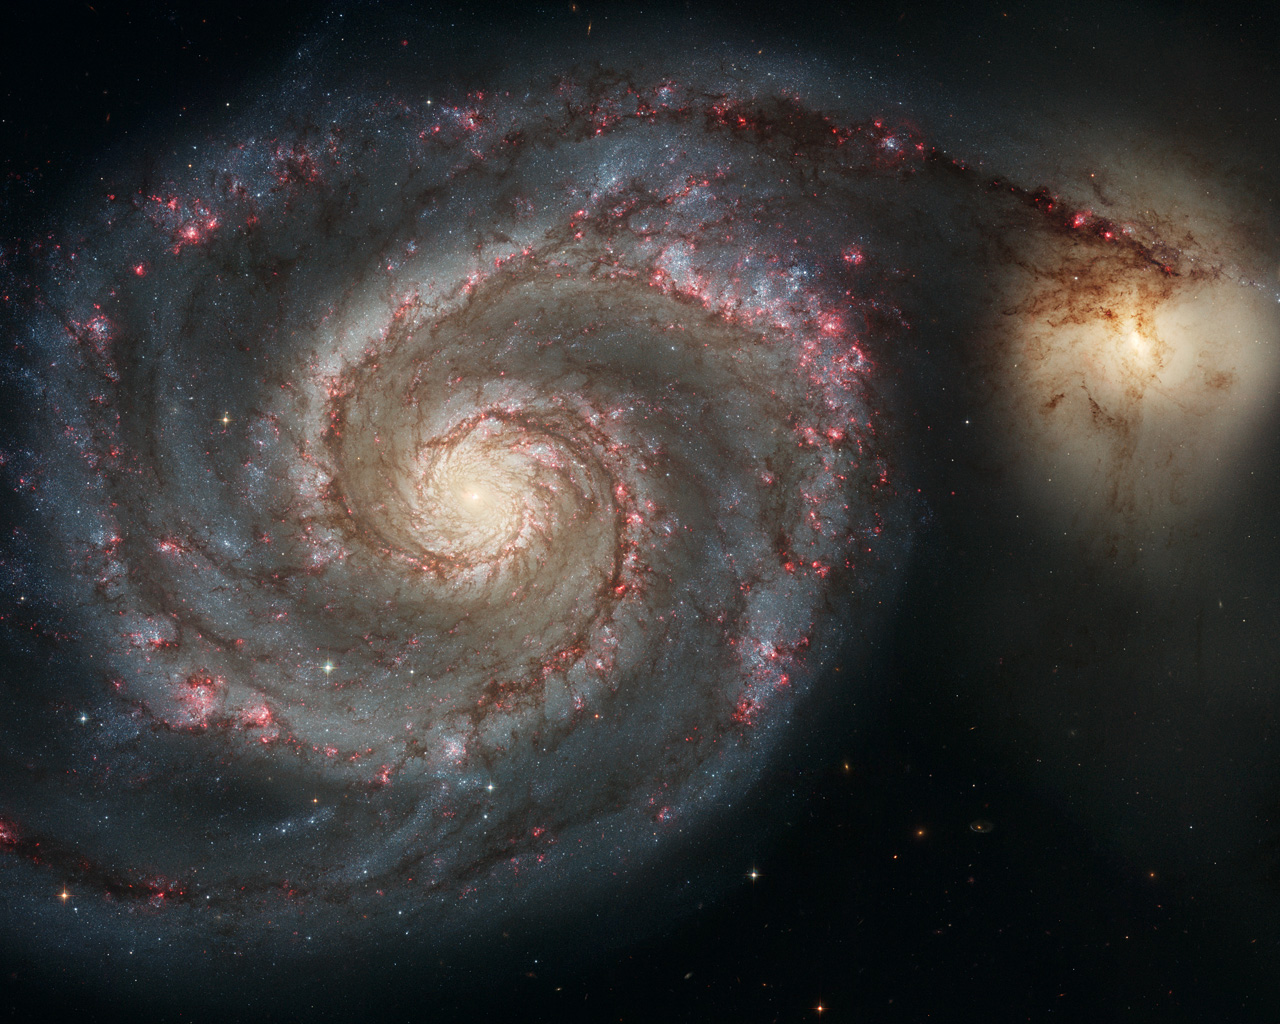 Spiral Galaxy M51, Hubble Space Telescope